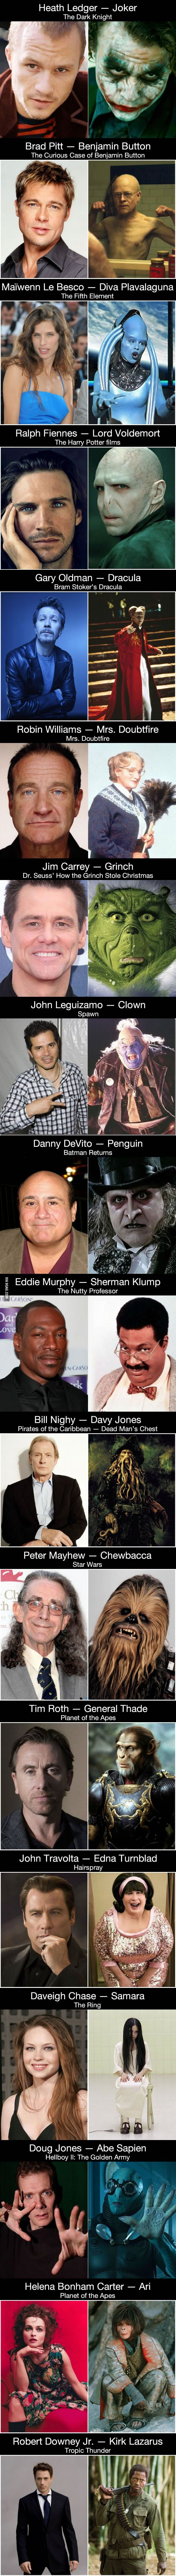 18 famous actors who changed beyond recognition for the sake of art - 9GAG